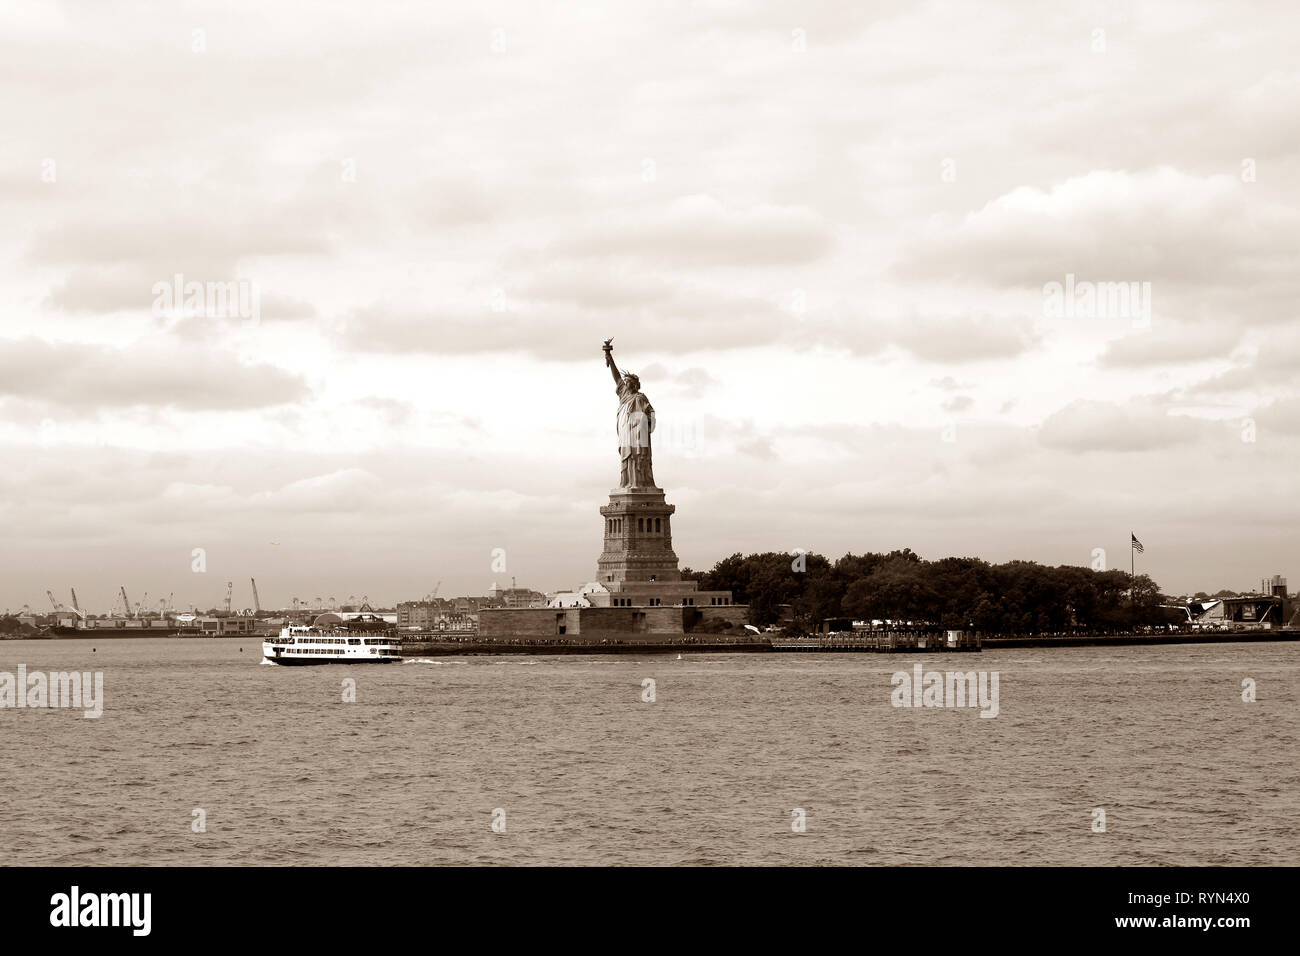 The Statue of Liberty on Liberty Island in the New York Harbor, New York City, USA in sepia tones - Stock Image